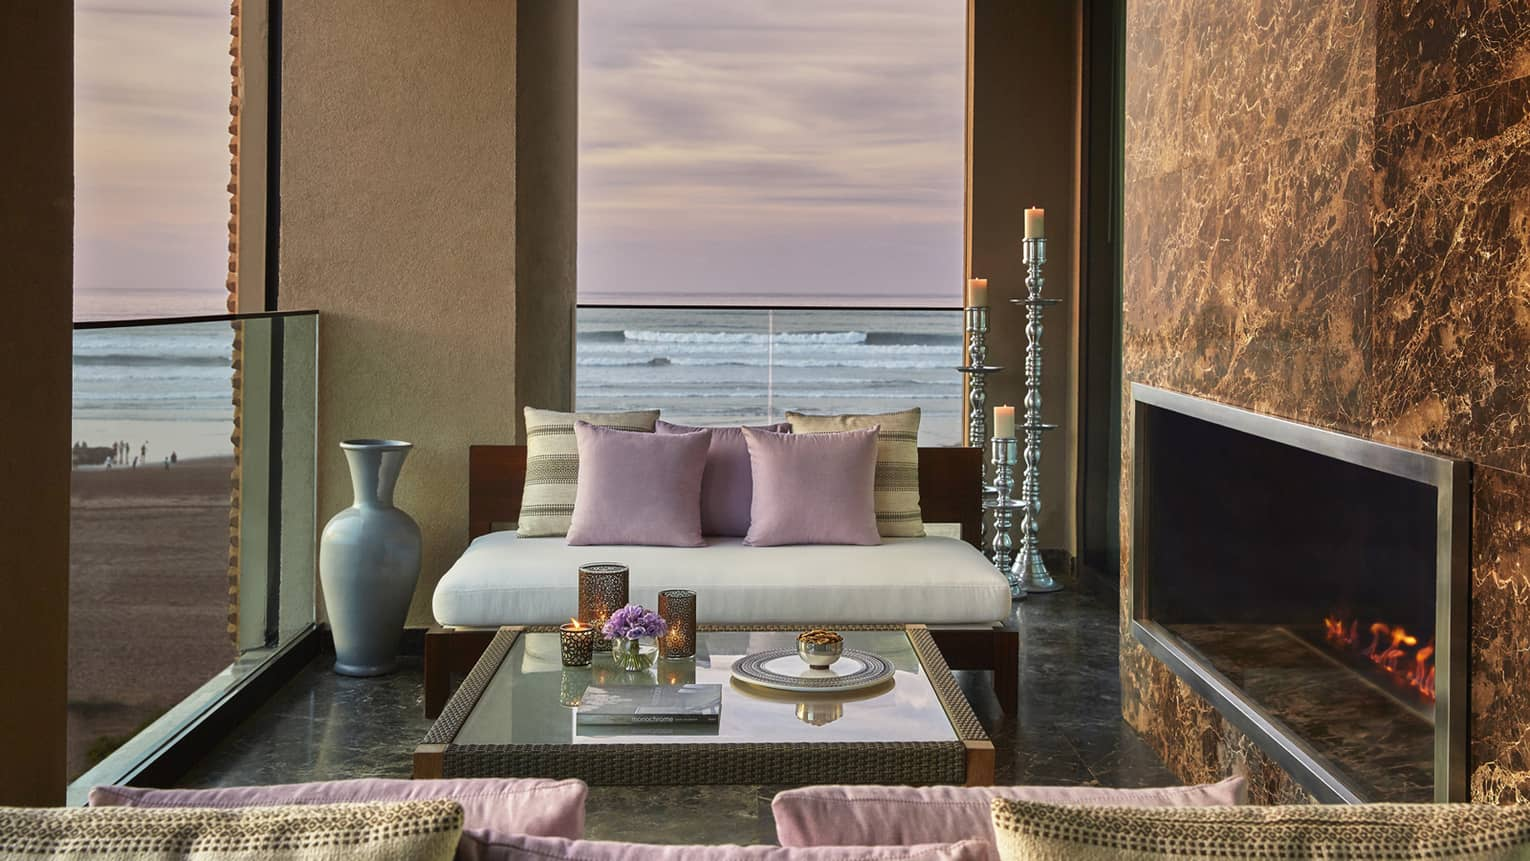 Royal Suite Ocean View white sofa, pink pillows by fireplace, under window with pink sunset, ocean